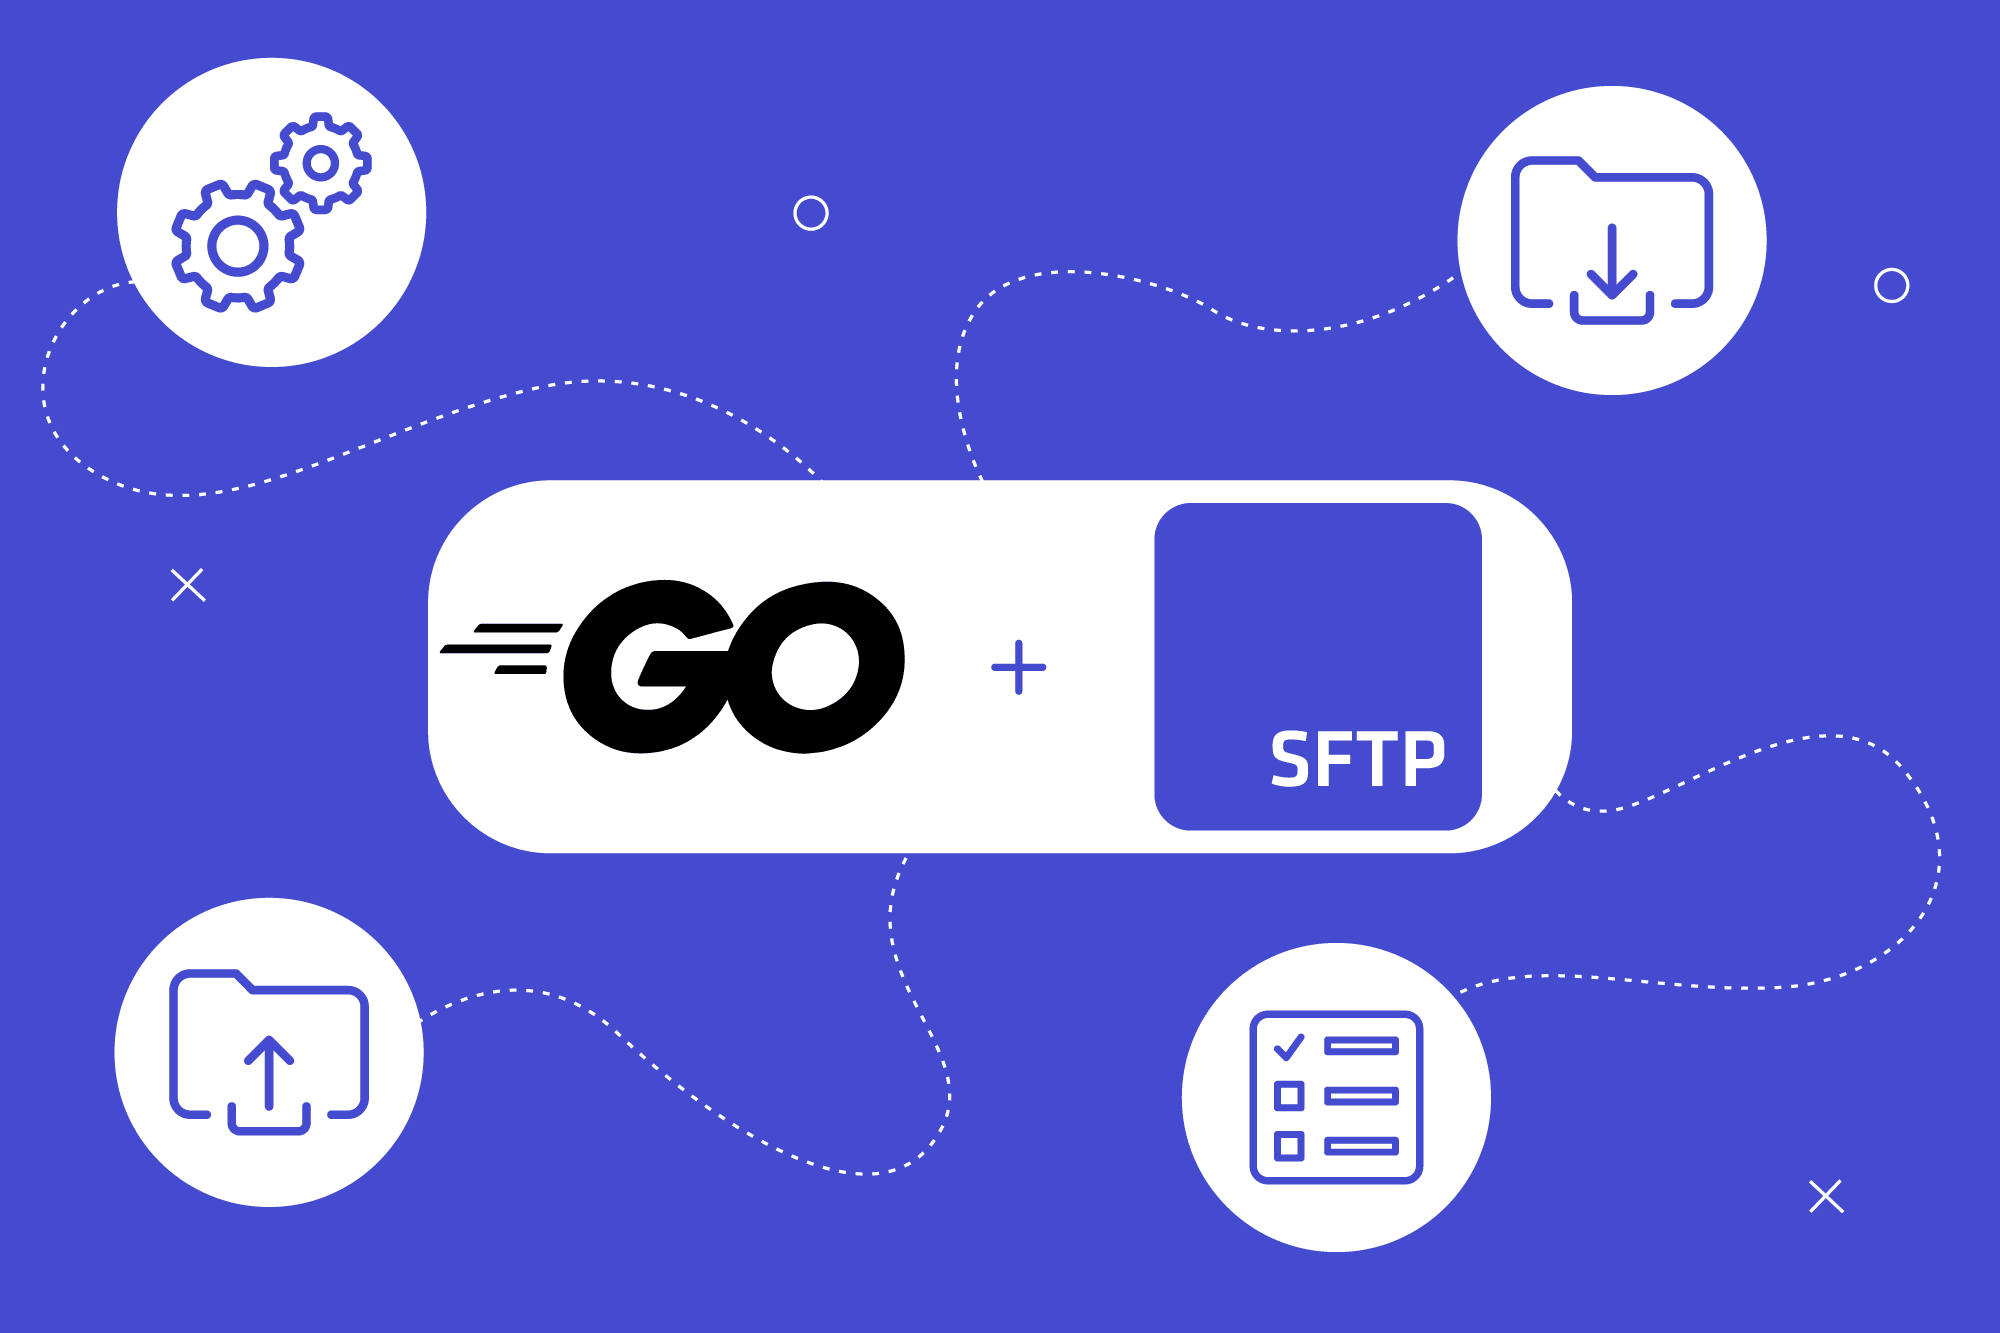 How to connect to SFTP in Go